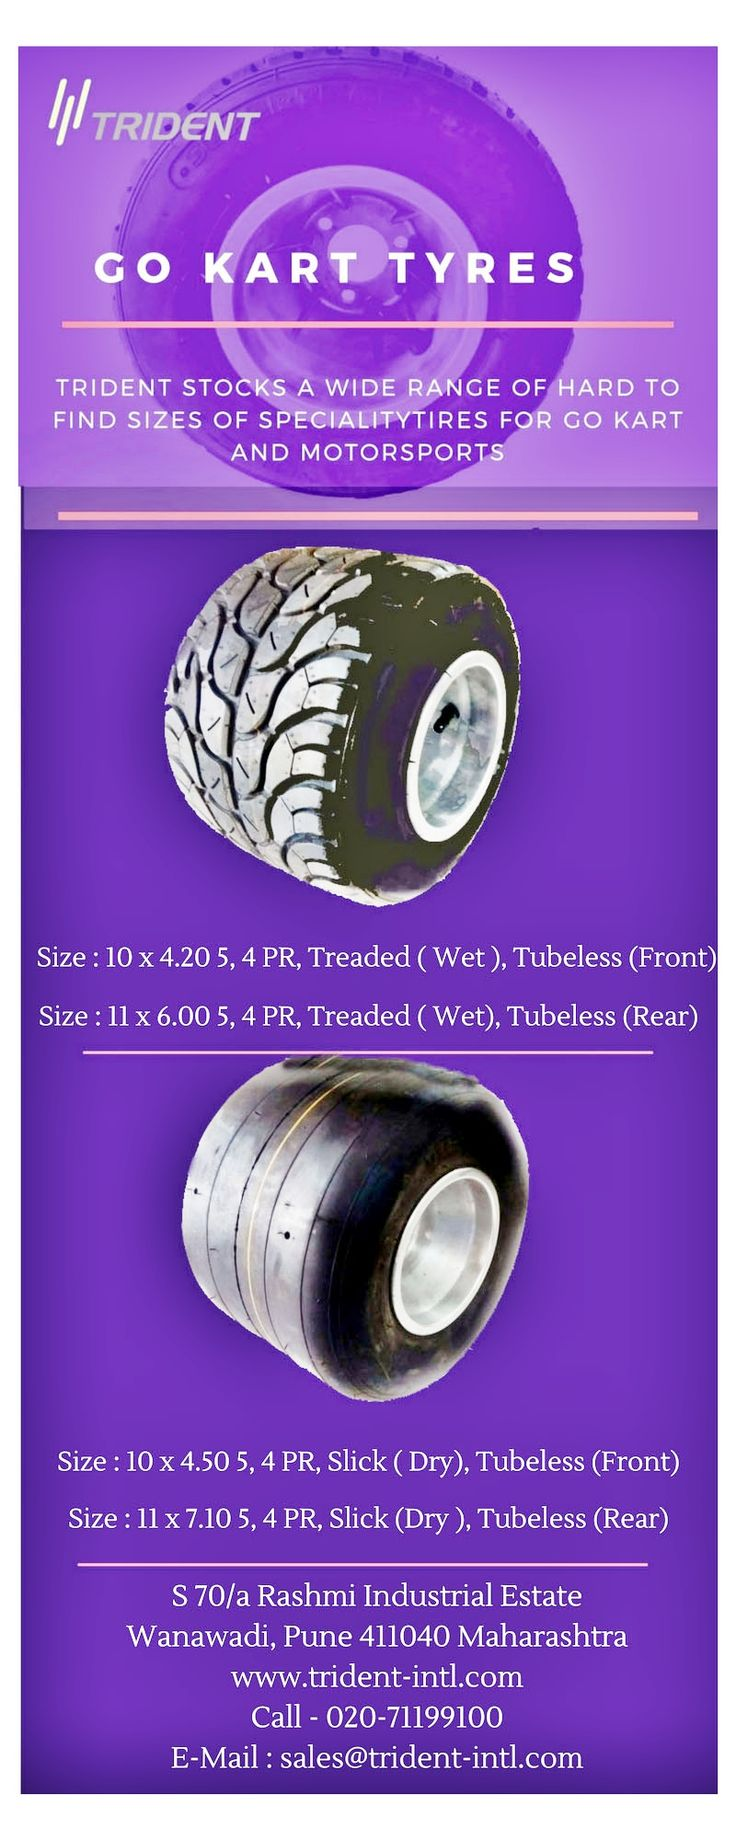 Tubeless construction with  low rolling resistance Wide range of sizes in slick and treaded pattern for all types of go karts Available in medium and hard compounds to suit a variety of tracks Wheels, rims, tubes and valves are also available Option of tire sealant for added puncture resistance and safety